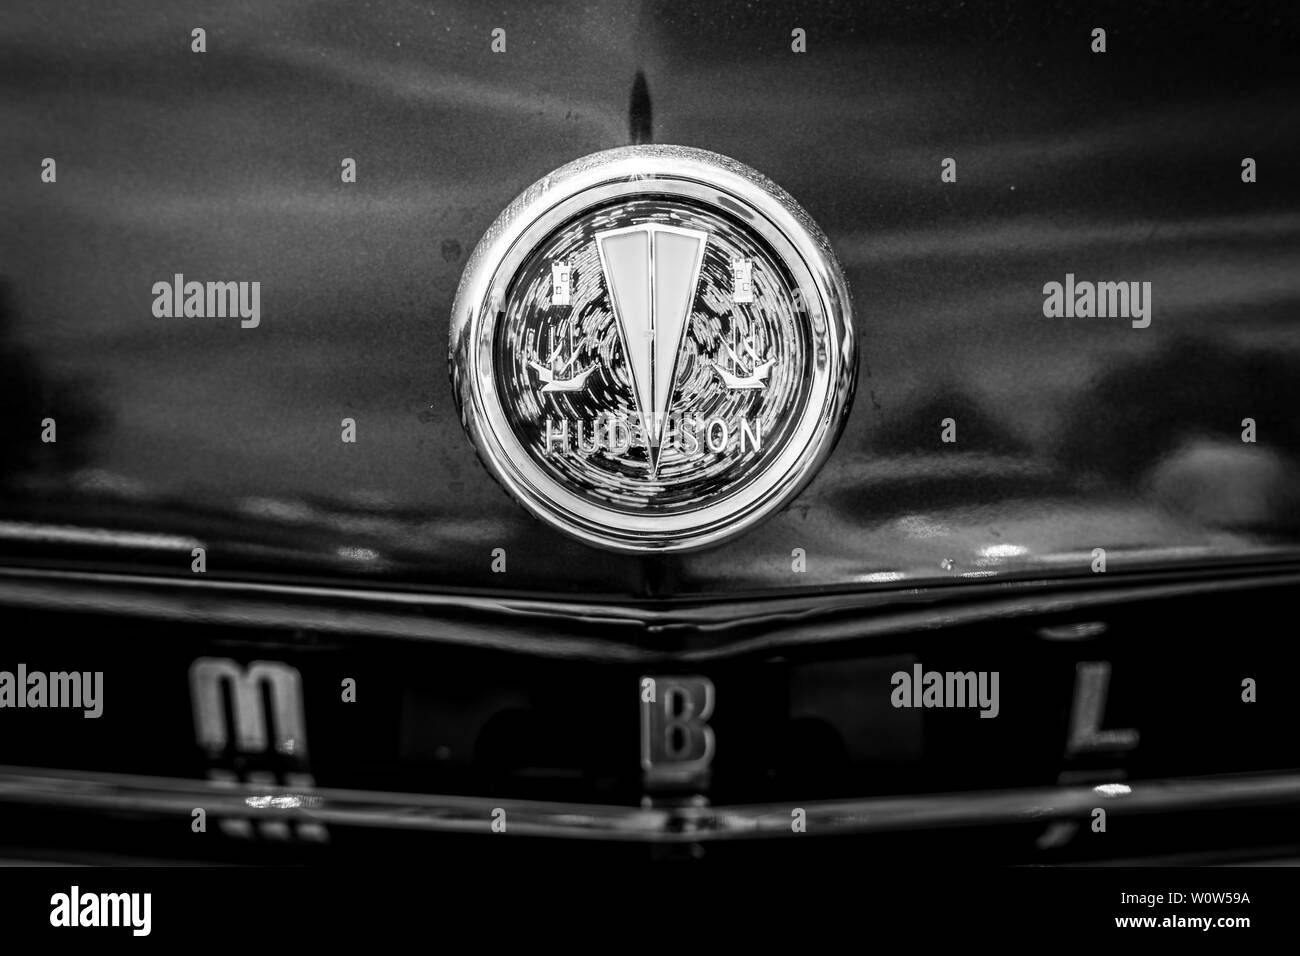 PAAREN IM GLIEN, GERMANY - MAY 19, 2018: Hood ornament of a mid-size car AMC Rambler Six, 1958. Black and white. Die Oldtimer Show 2018. - Stock Image